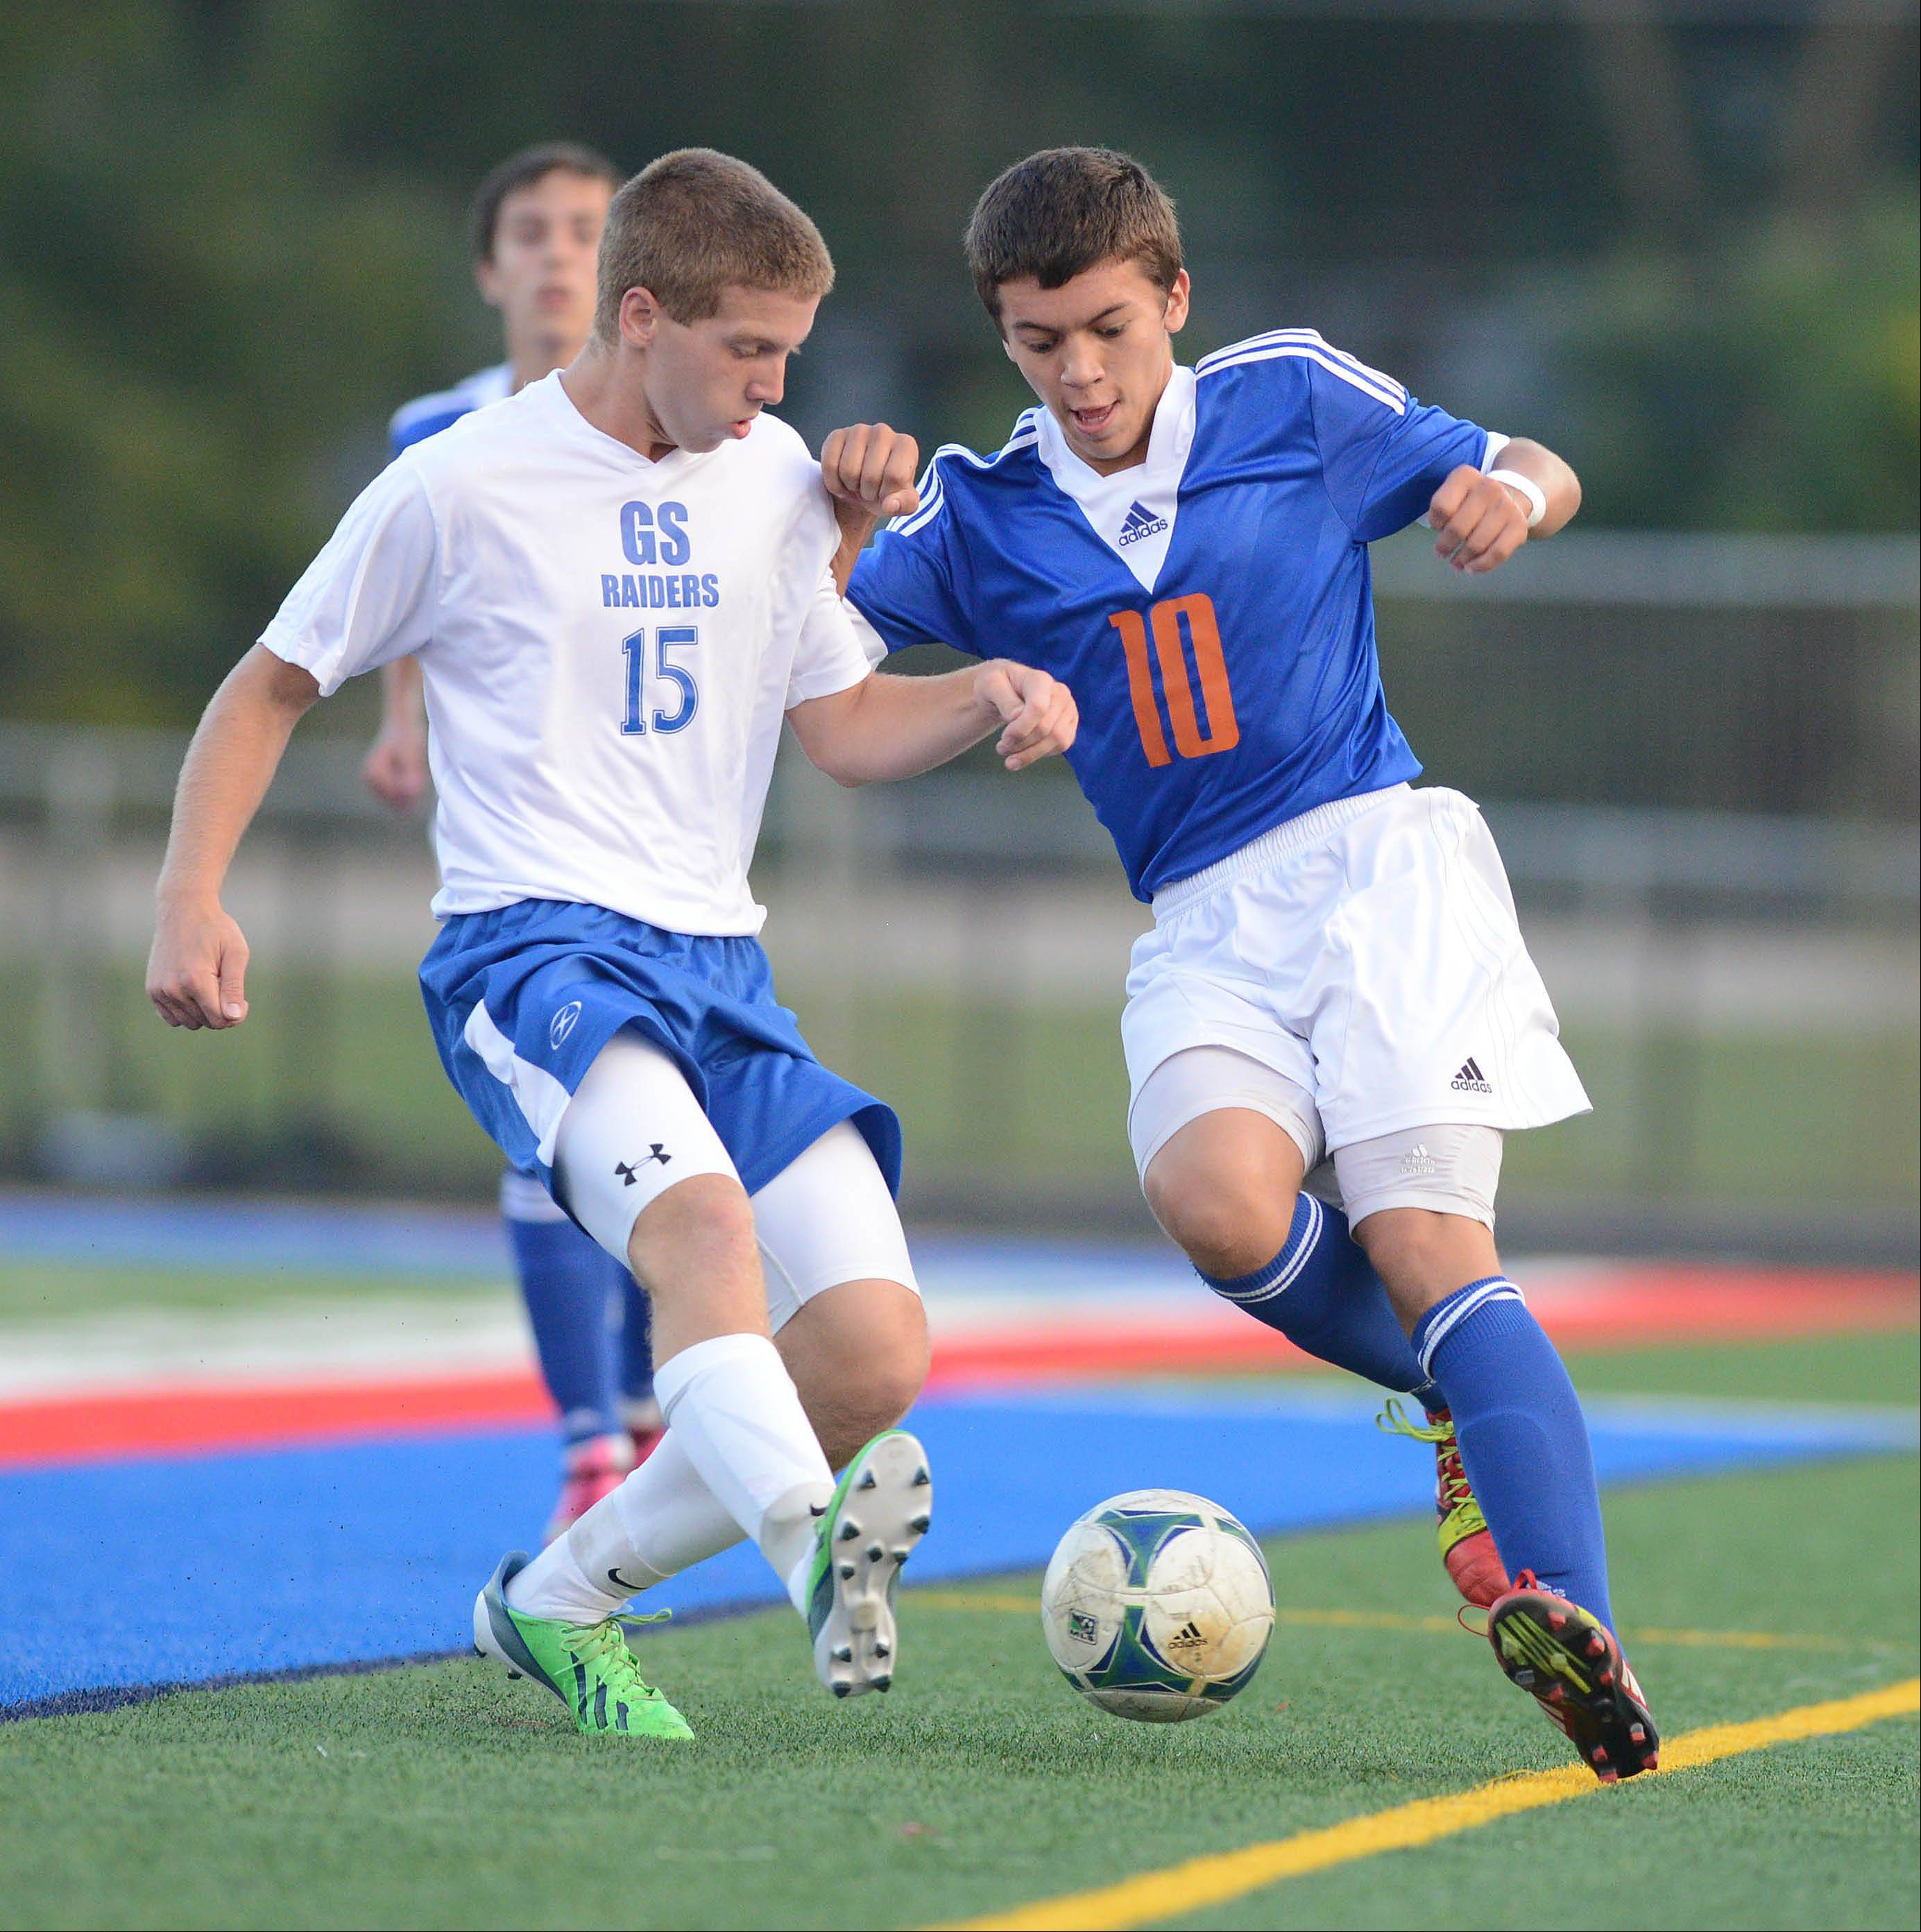 Ryan Hoffman of Glenbard South and Raul Ayala of Fenton work the ball during the Fenton at Glenbard South boys soccer game Thursday.